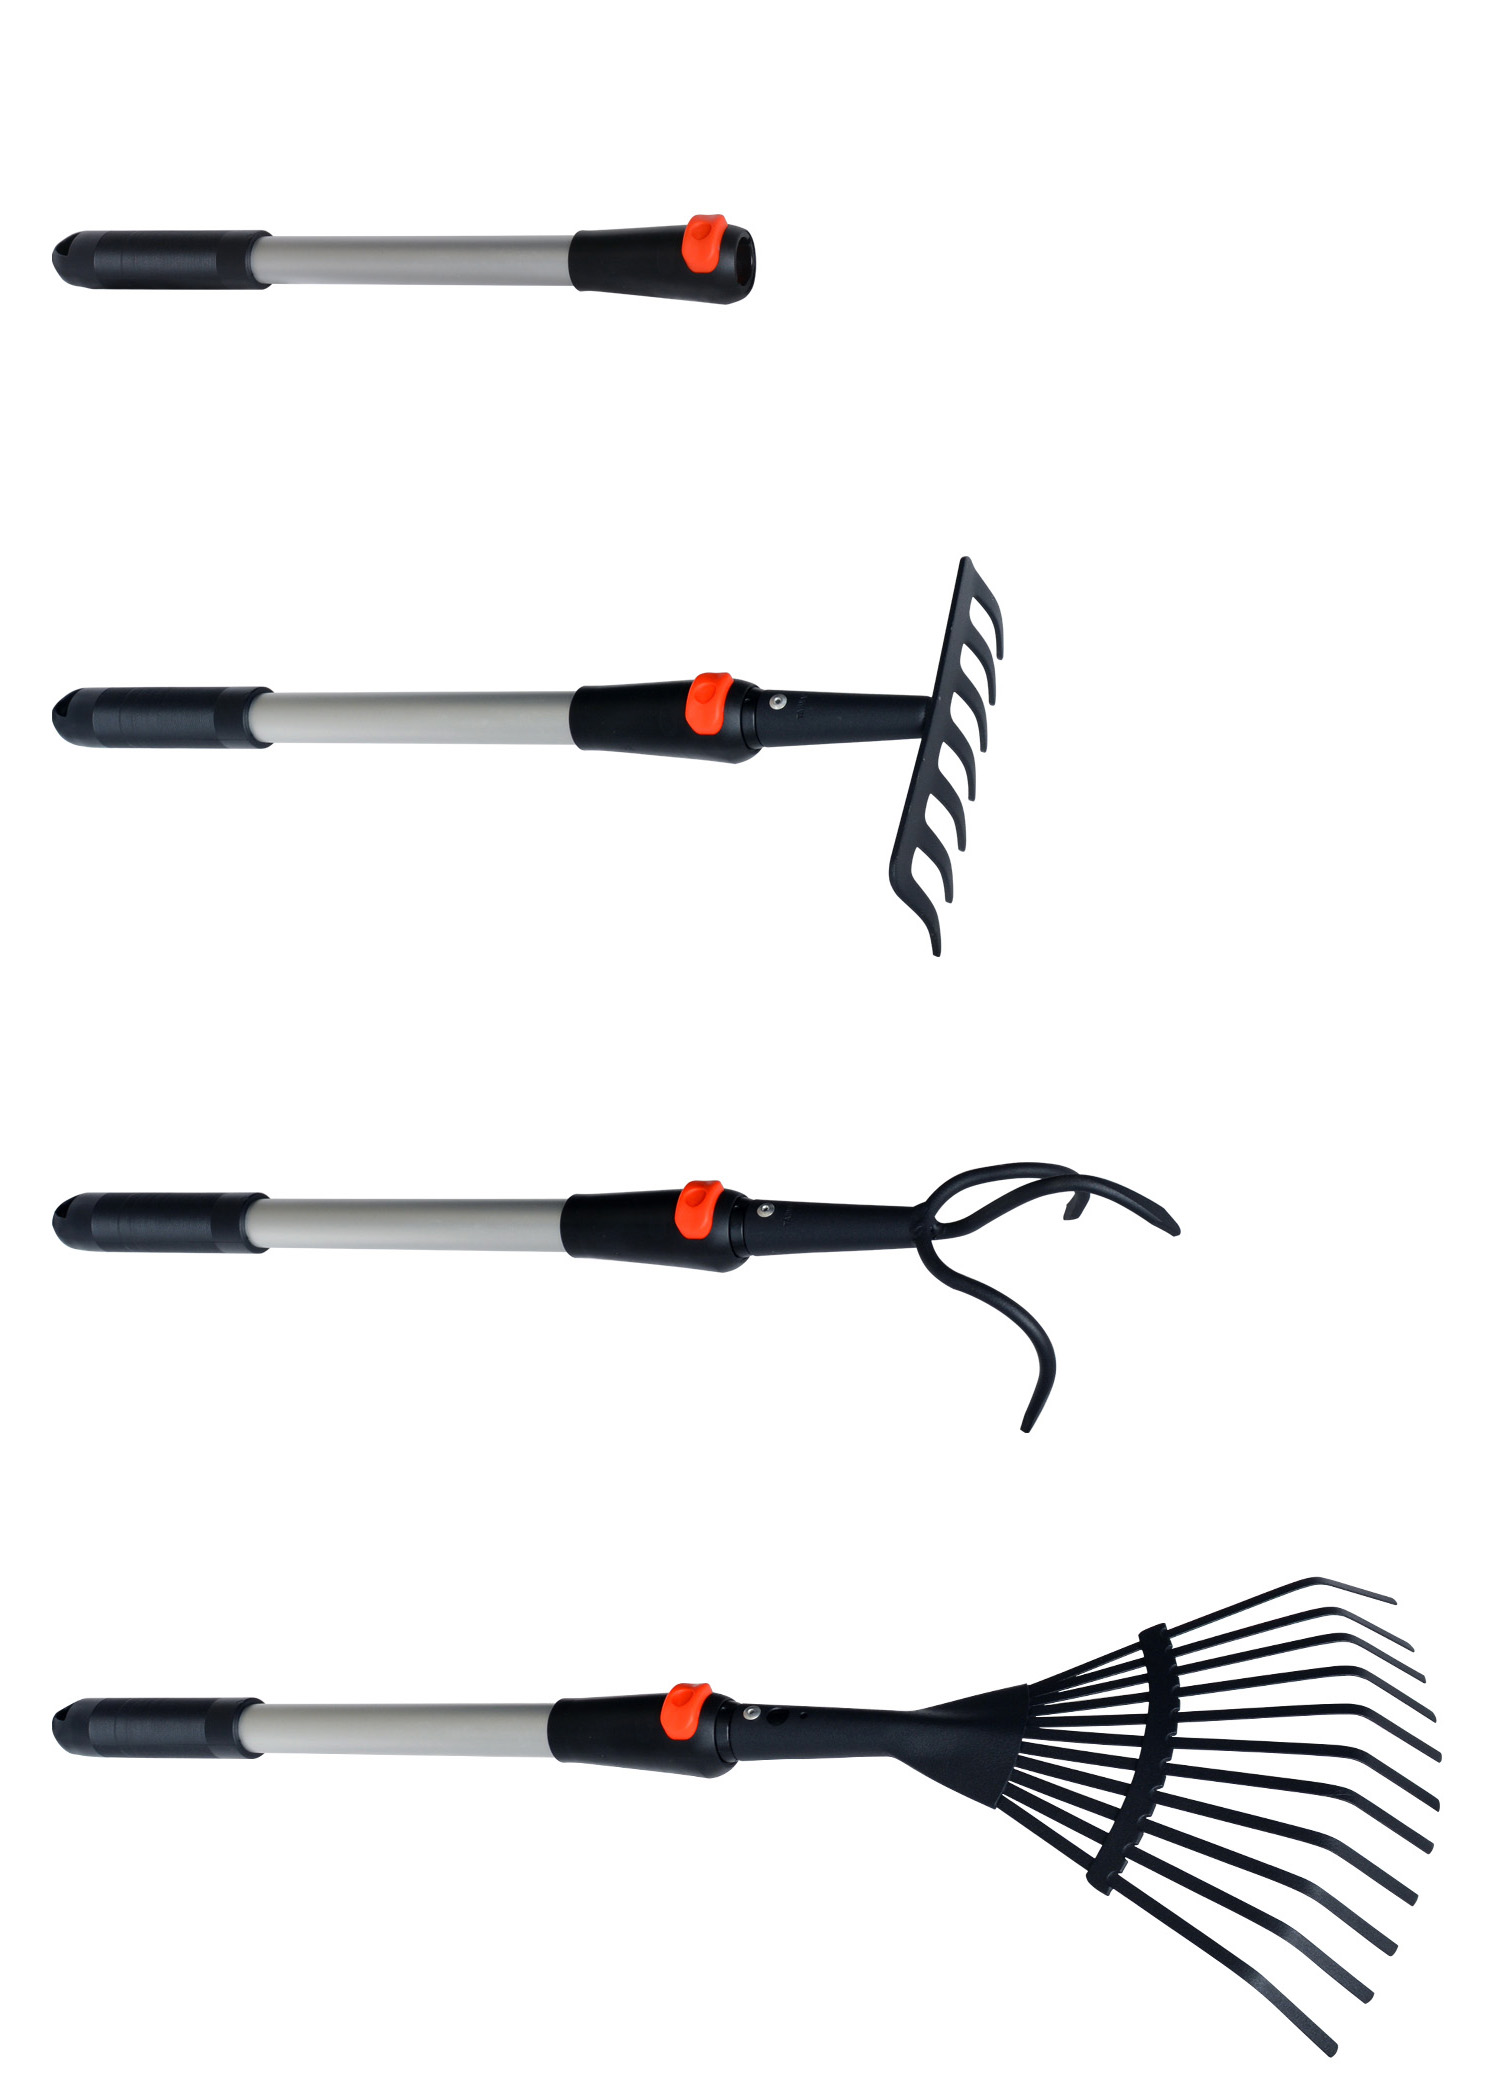 Zenport Garden Multi Tool Bundle J0016-K1 Cultivator and Rake Garden Multi Tool, Includes J0113 J1110 J4007